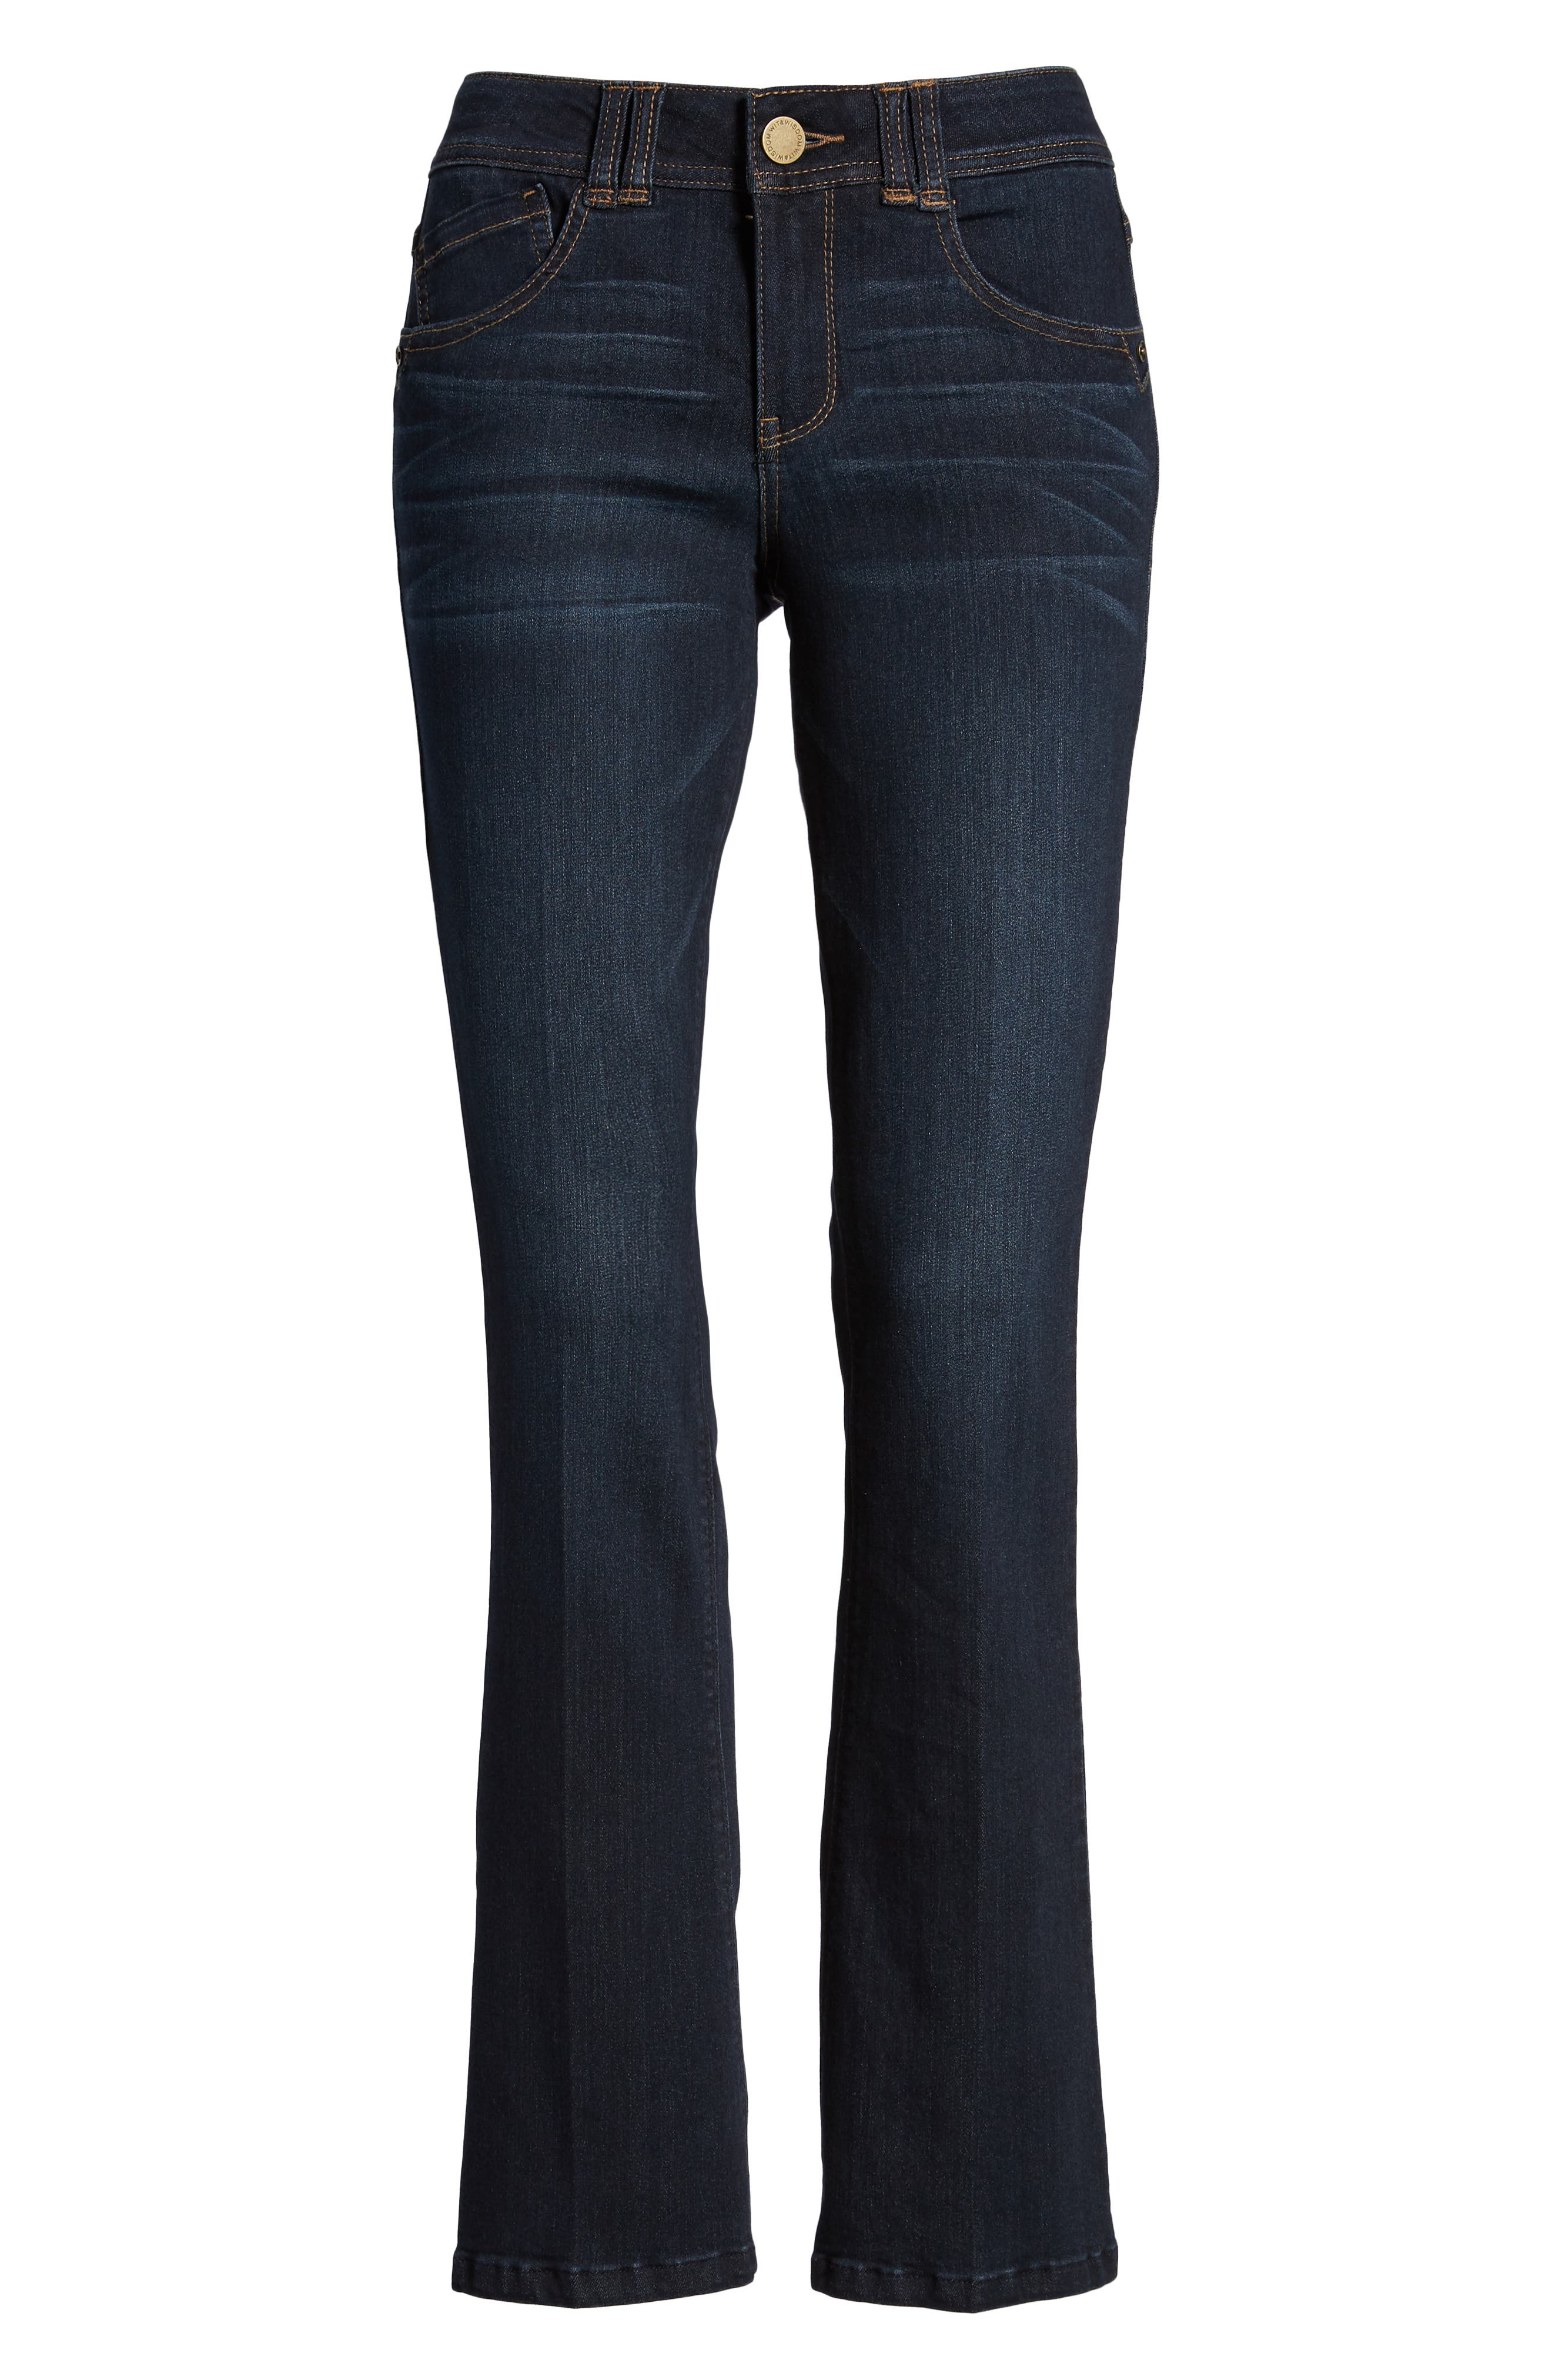 Ab-solution Itty Bitty Bootcut Jeans,                             Alternate thumbnail 7, color,                             402